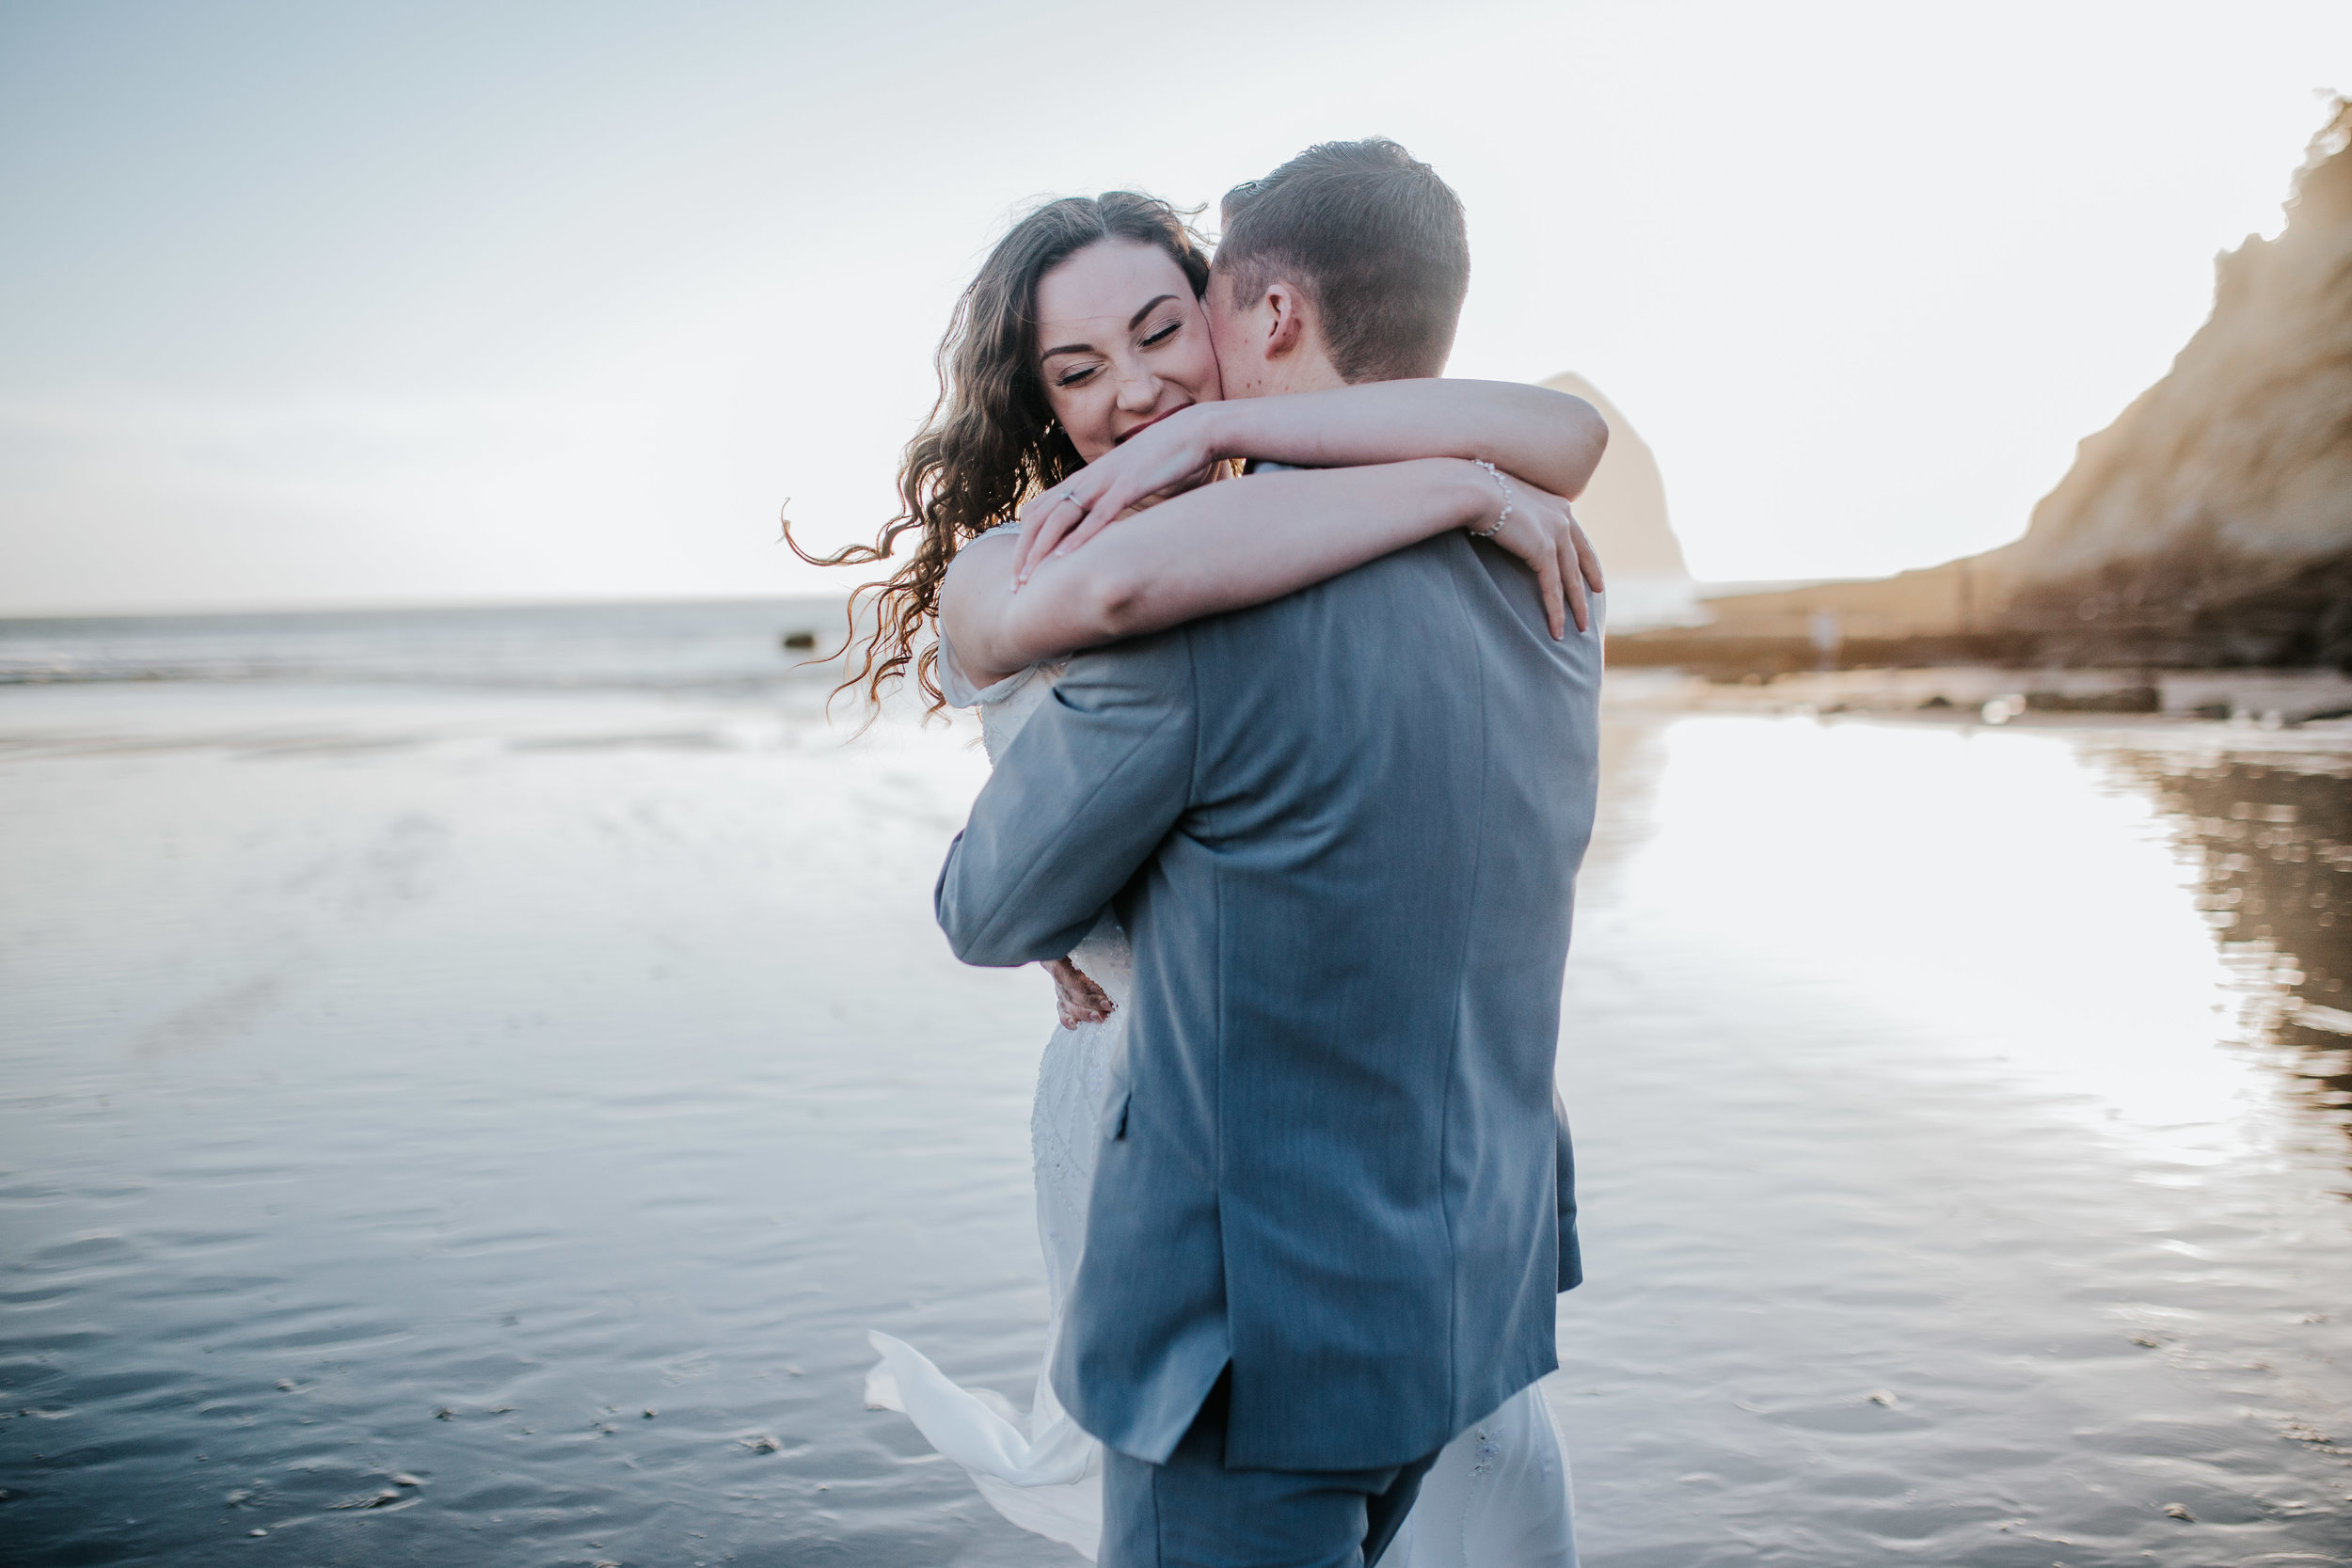 Cannon and Pacific Beach Oregon Wedding Session Groom Spins Bride around on beach